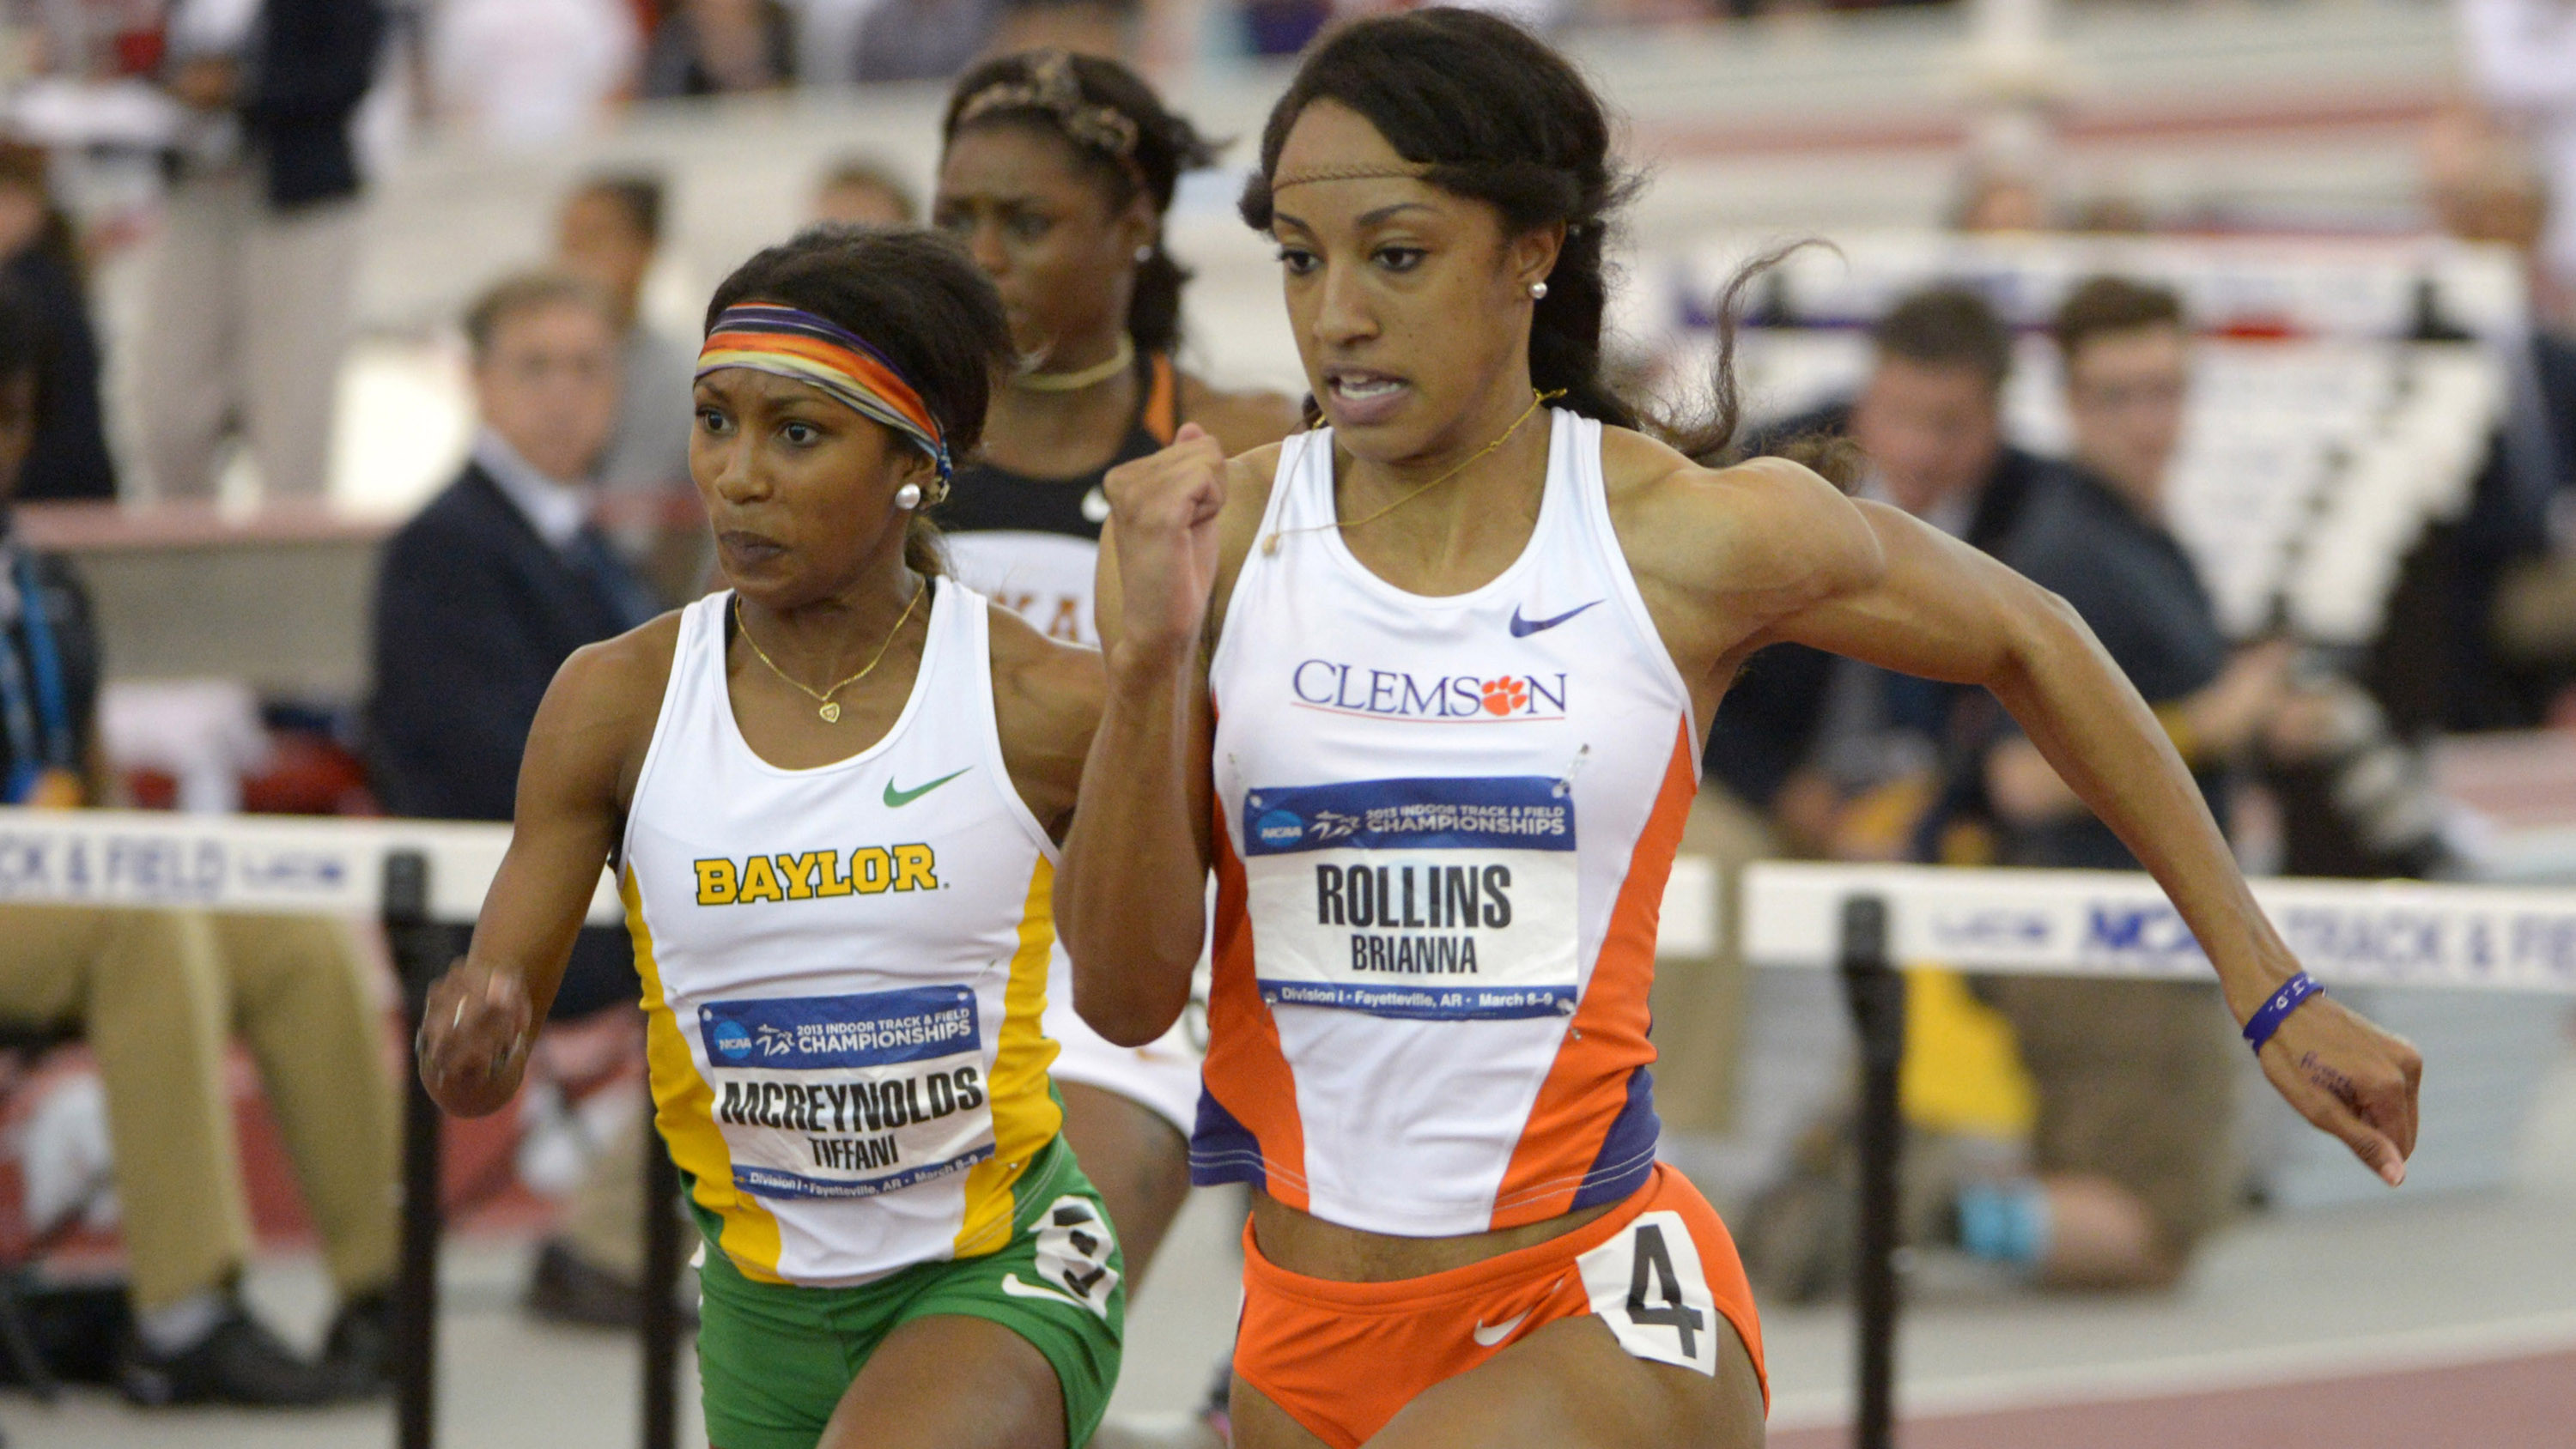 Brianna Rollins Claims Second NCAA National Crown in 60 Hurdles